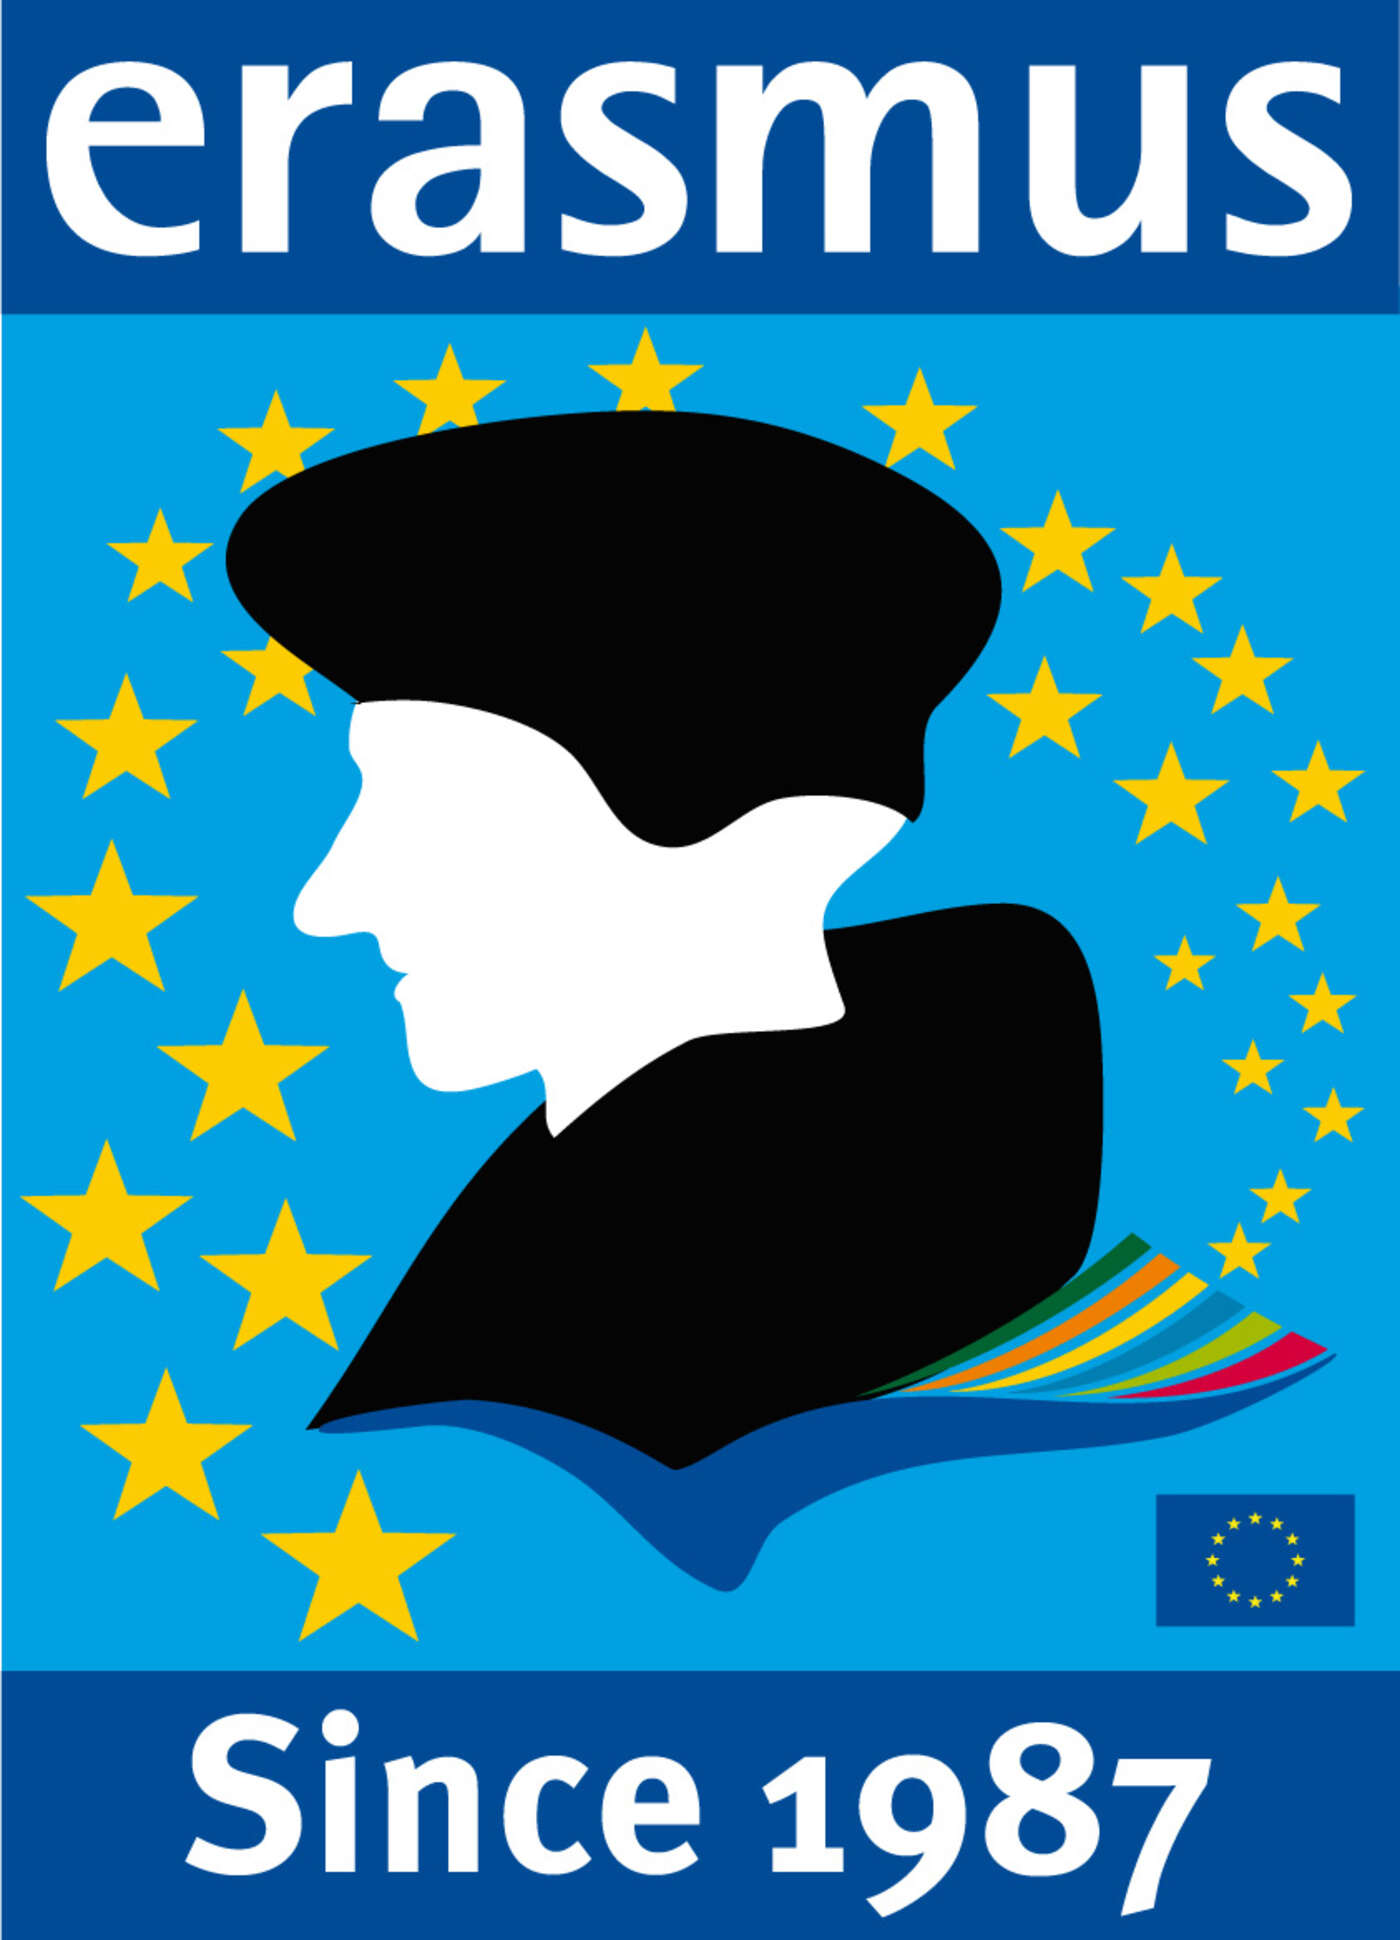 The Birthday of the Erasmus programme - Youthreporter